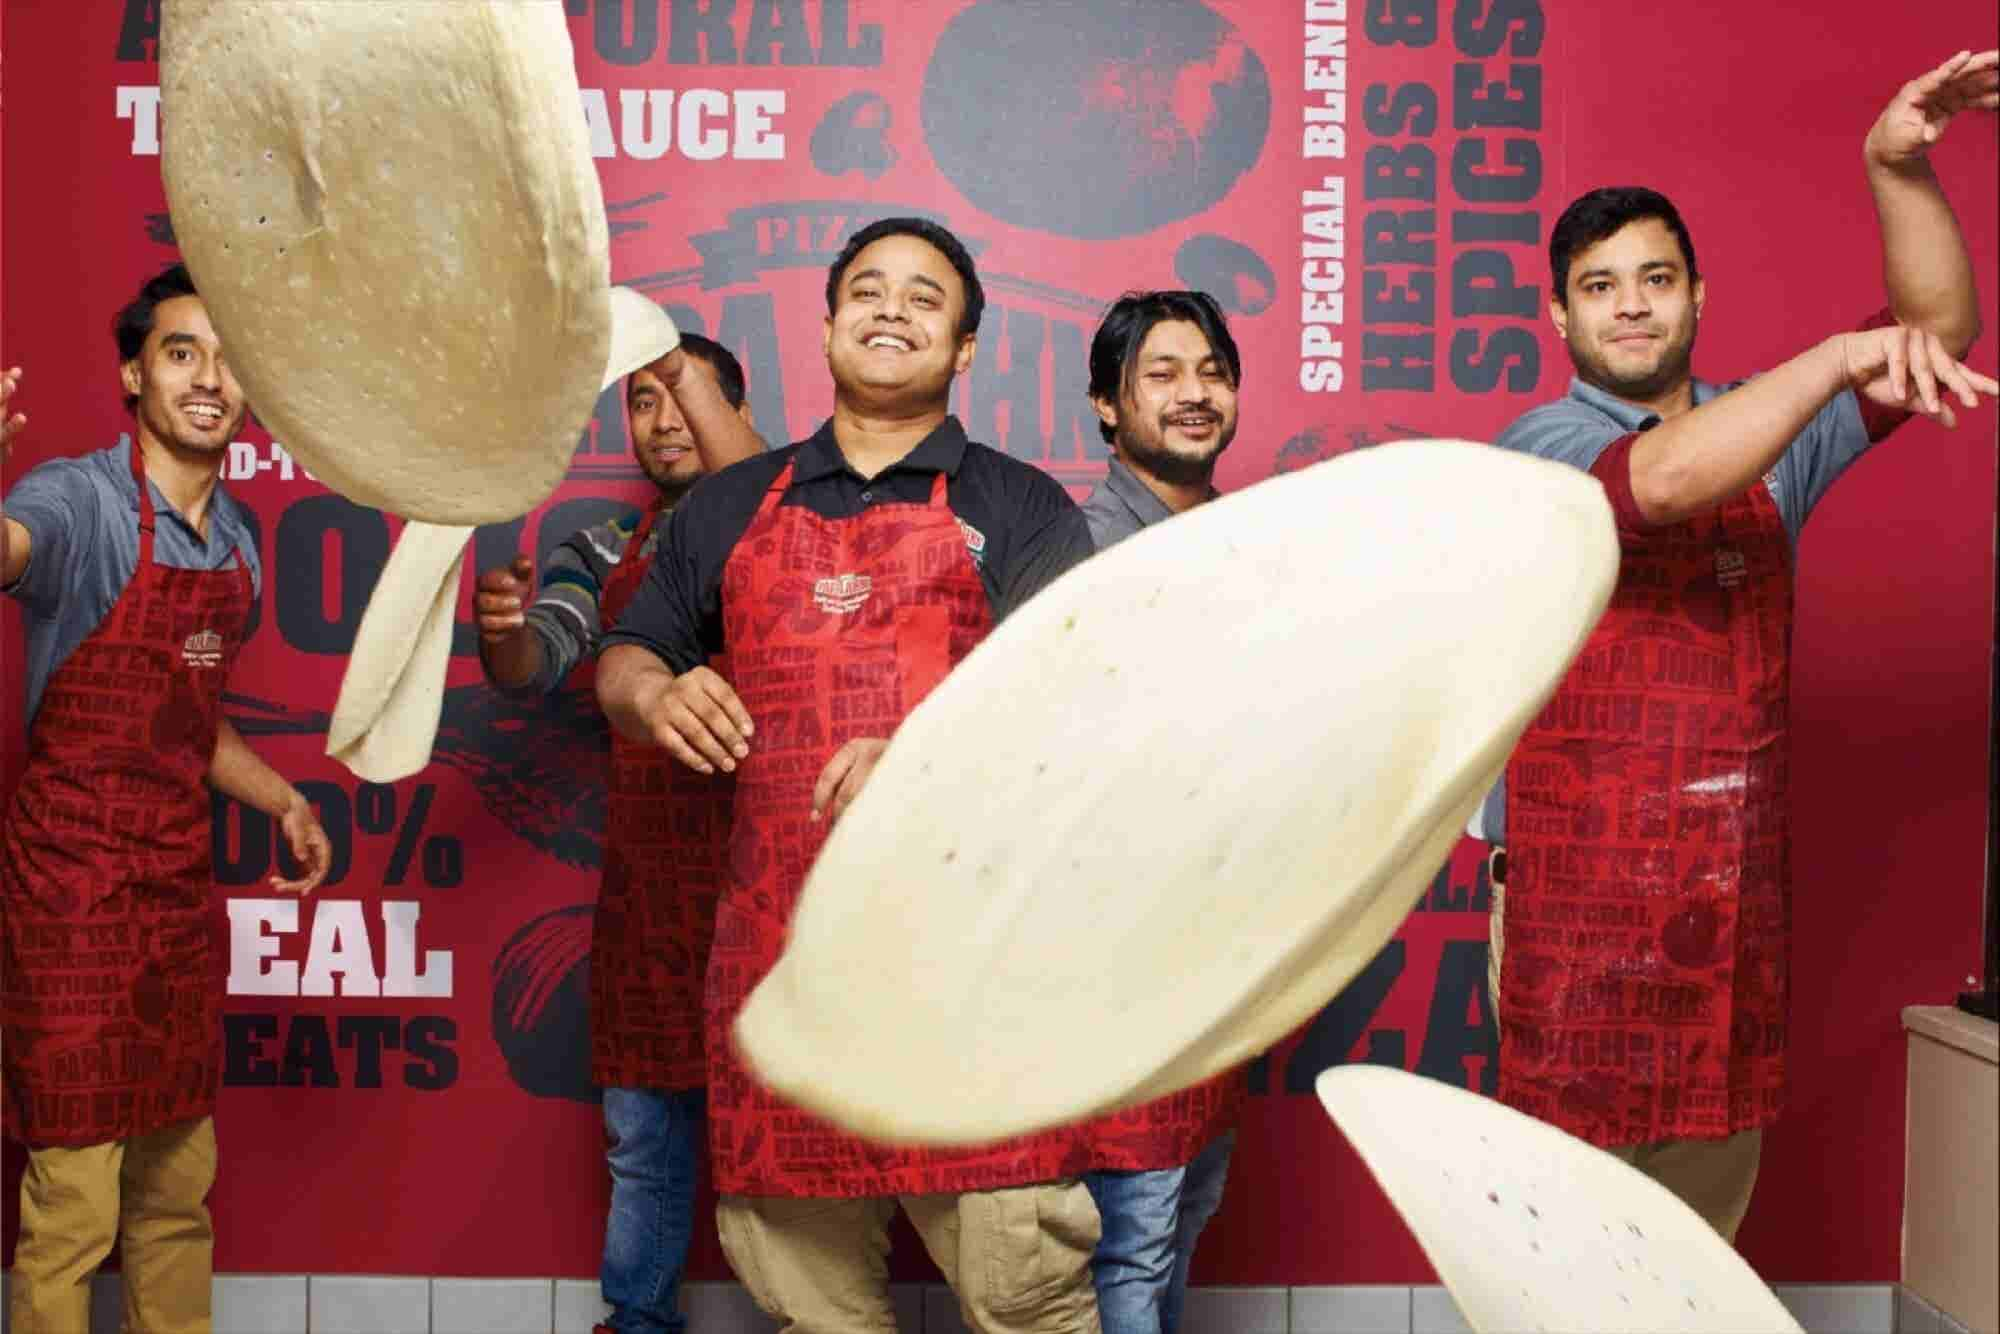 How a Young Immigrant Rapidly Rose in the Pizza Business